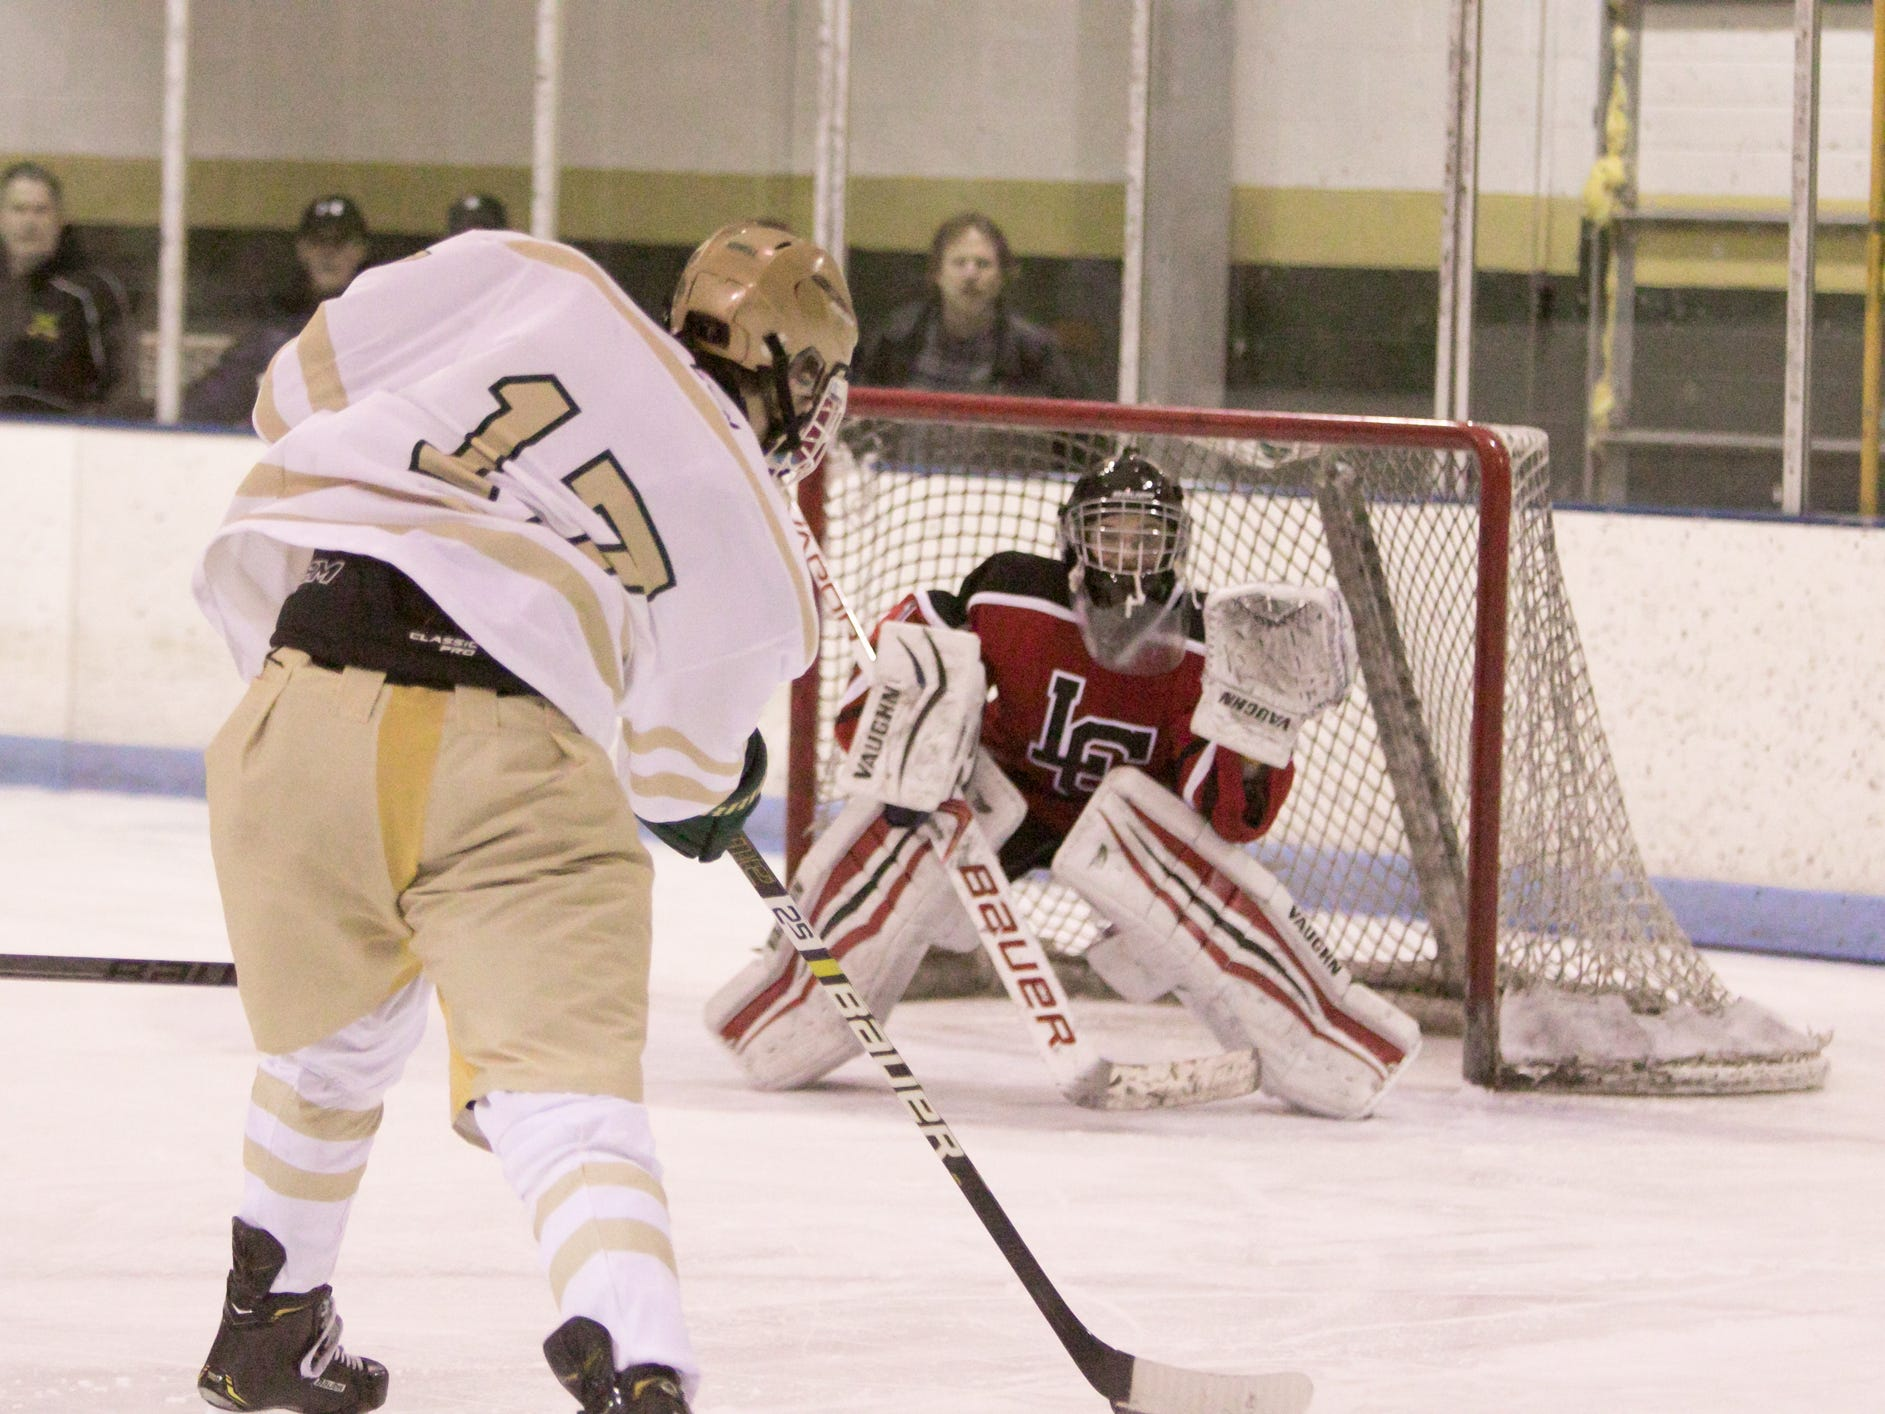 Howell's Josh Farr takes aim at Livonia Churchill goalie Justin Swamba while scoring the Highlanders' third goal in a 6-3 victory on Friday, Jan. 4, 2019 at Grand Oaks Ice Arena.